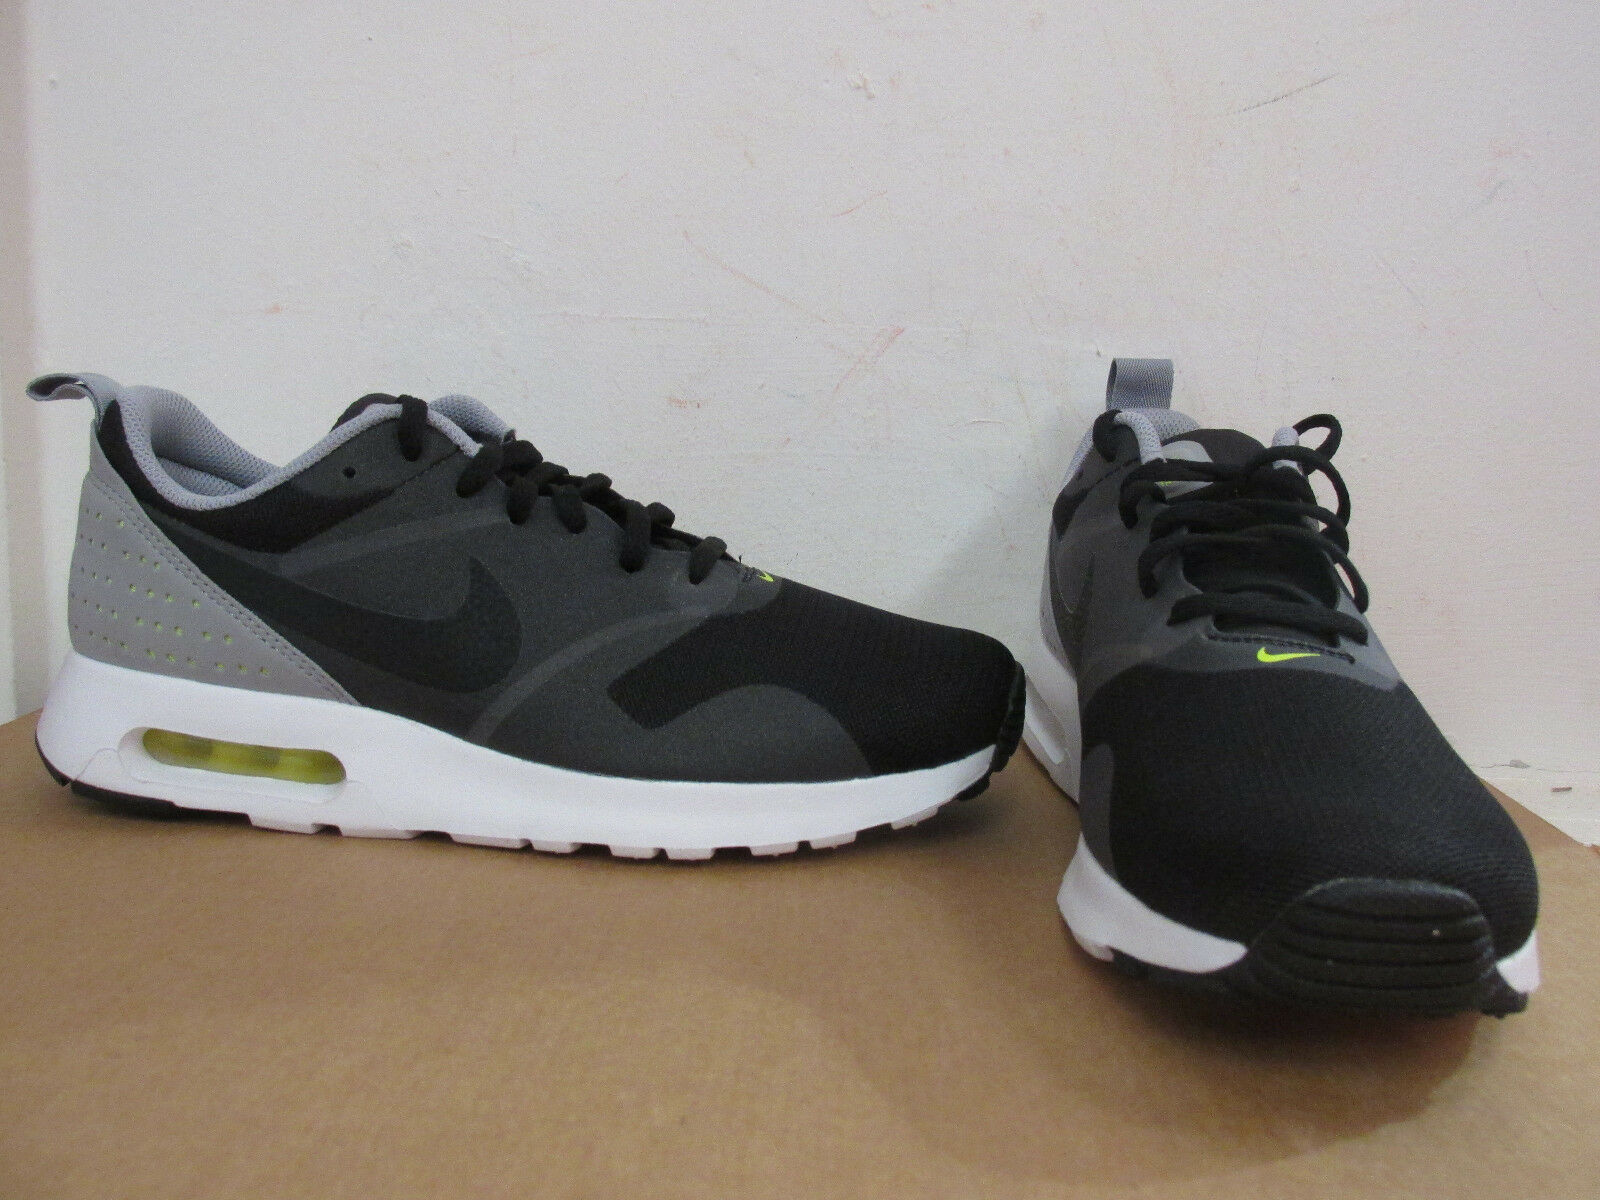 nike air max tavas mens running trainers 705149 027 sneakers shoes SAMPLE